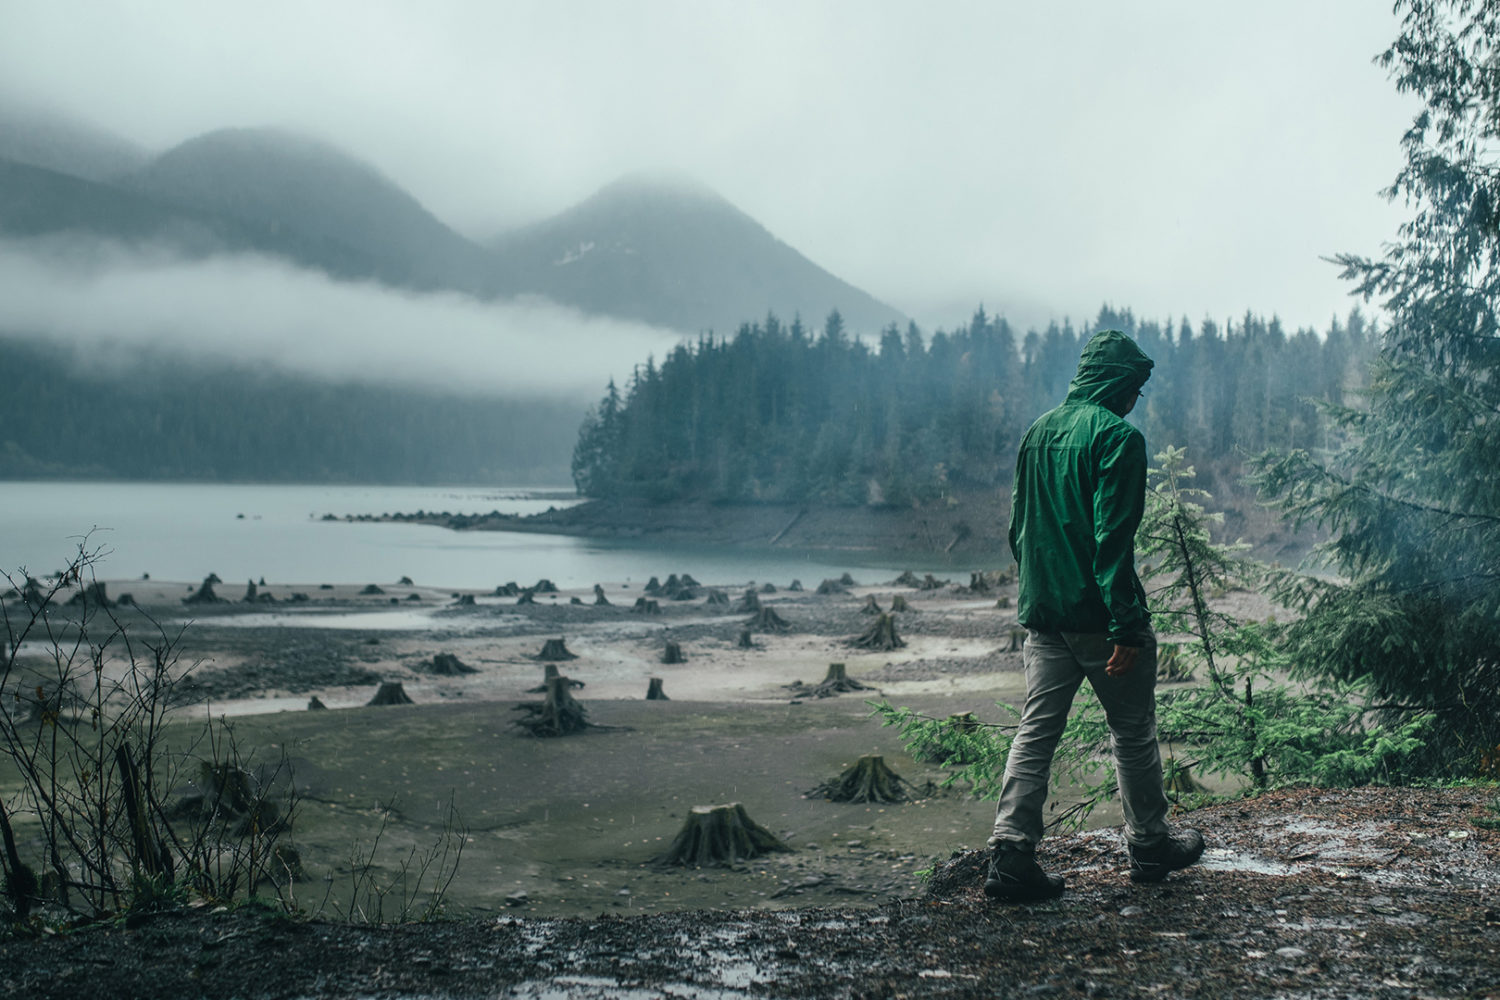 Interview: Dylan Furst on photography and filmmaking